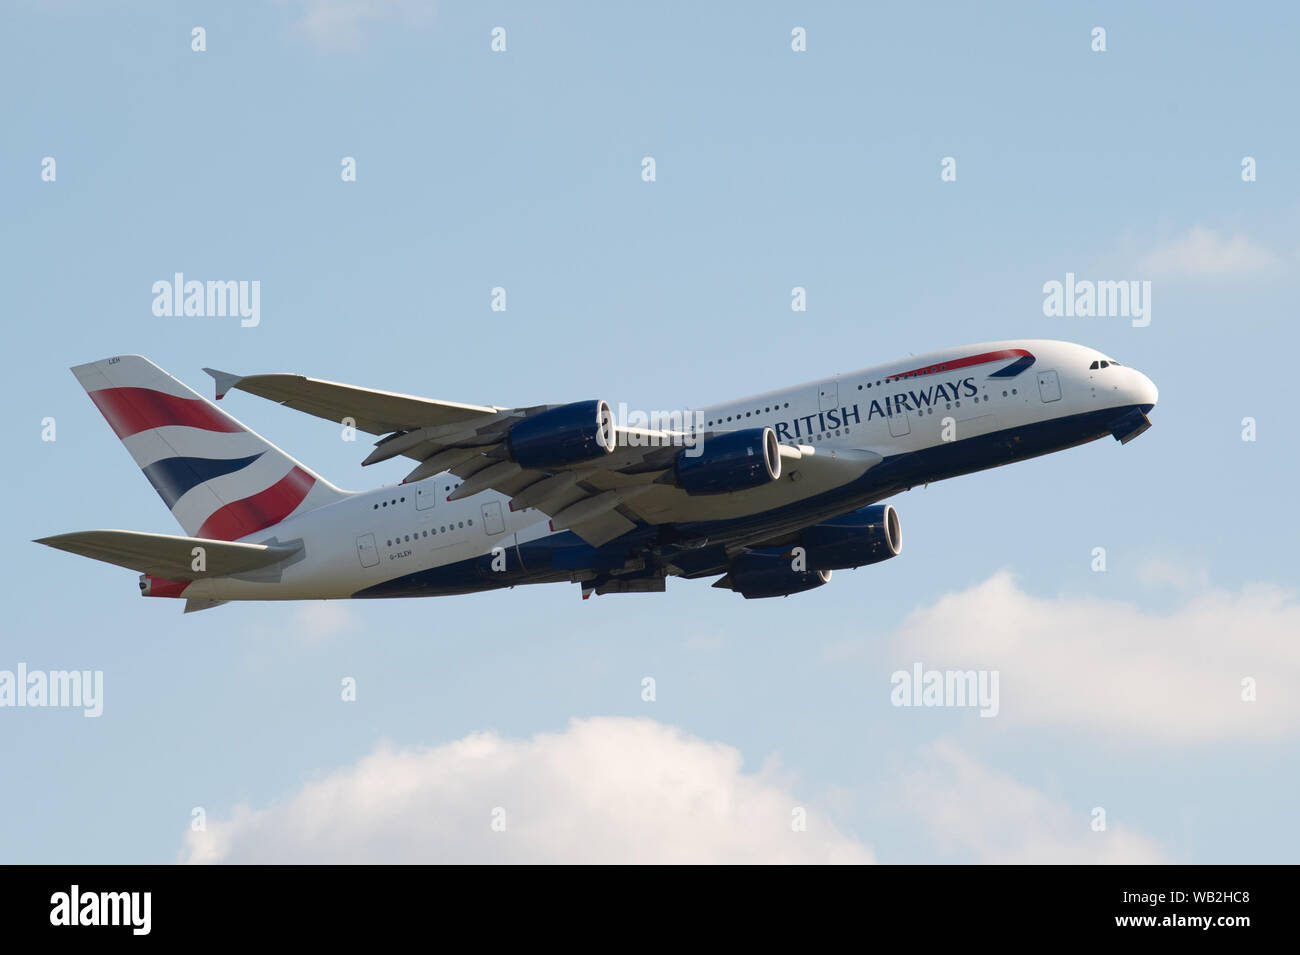 London, UK. 23rd August 2019. BA planes take off from Heathrow Airport shortly after the British Airline Pilots Association (BALPA) announced it has given notice to British Airways that it will call on its members to strike on 9th, 10th and 27th September 2019. Credit: Peter Manning/Alamy Live News Stock Photo